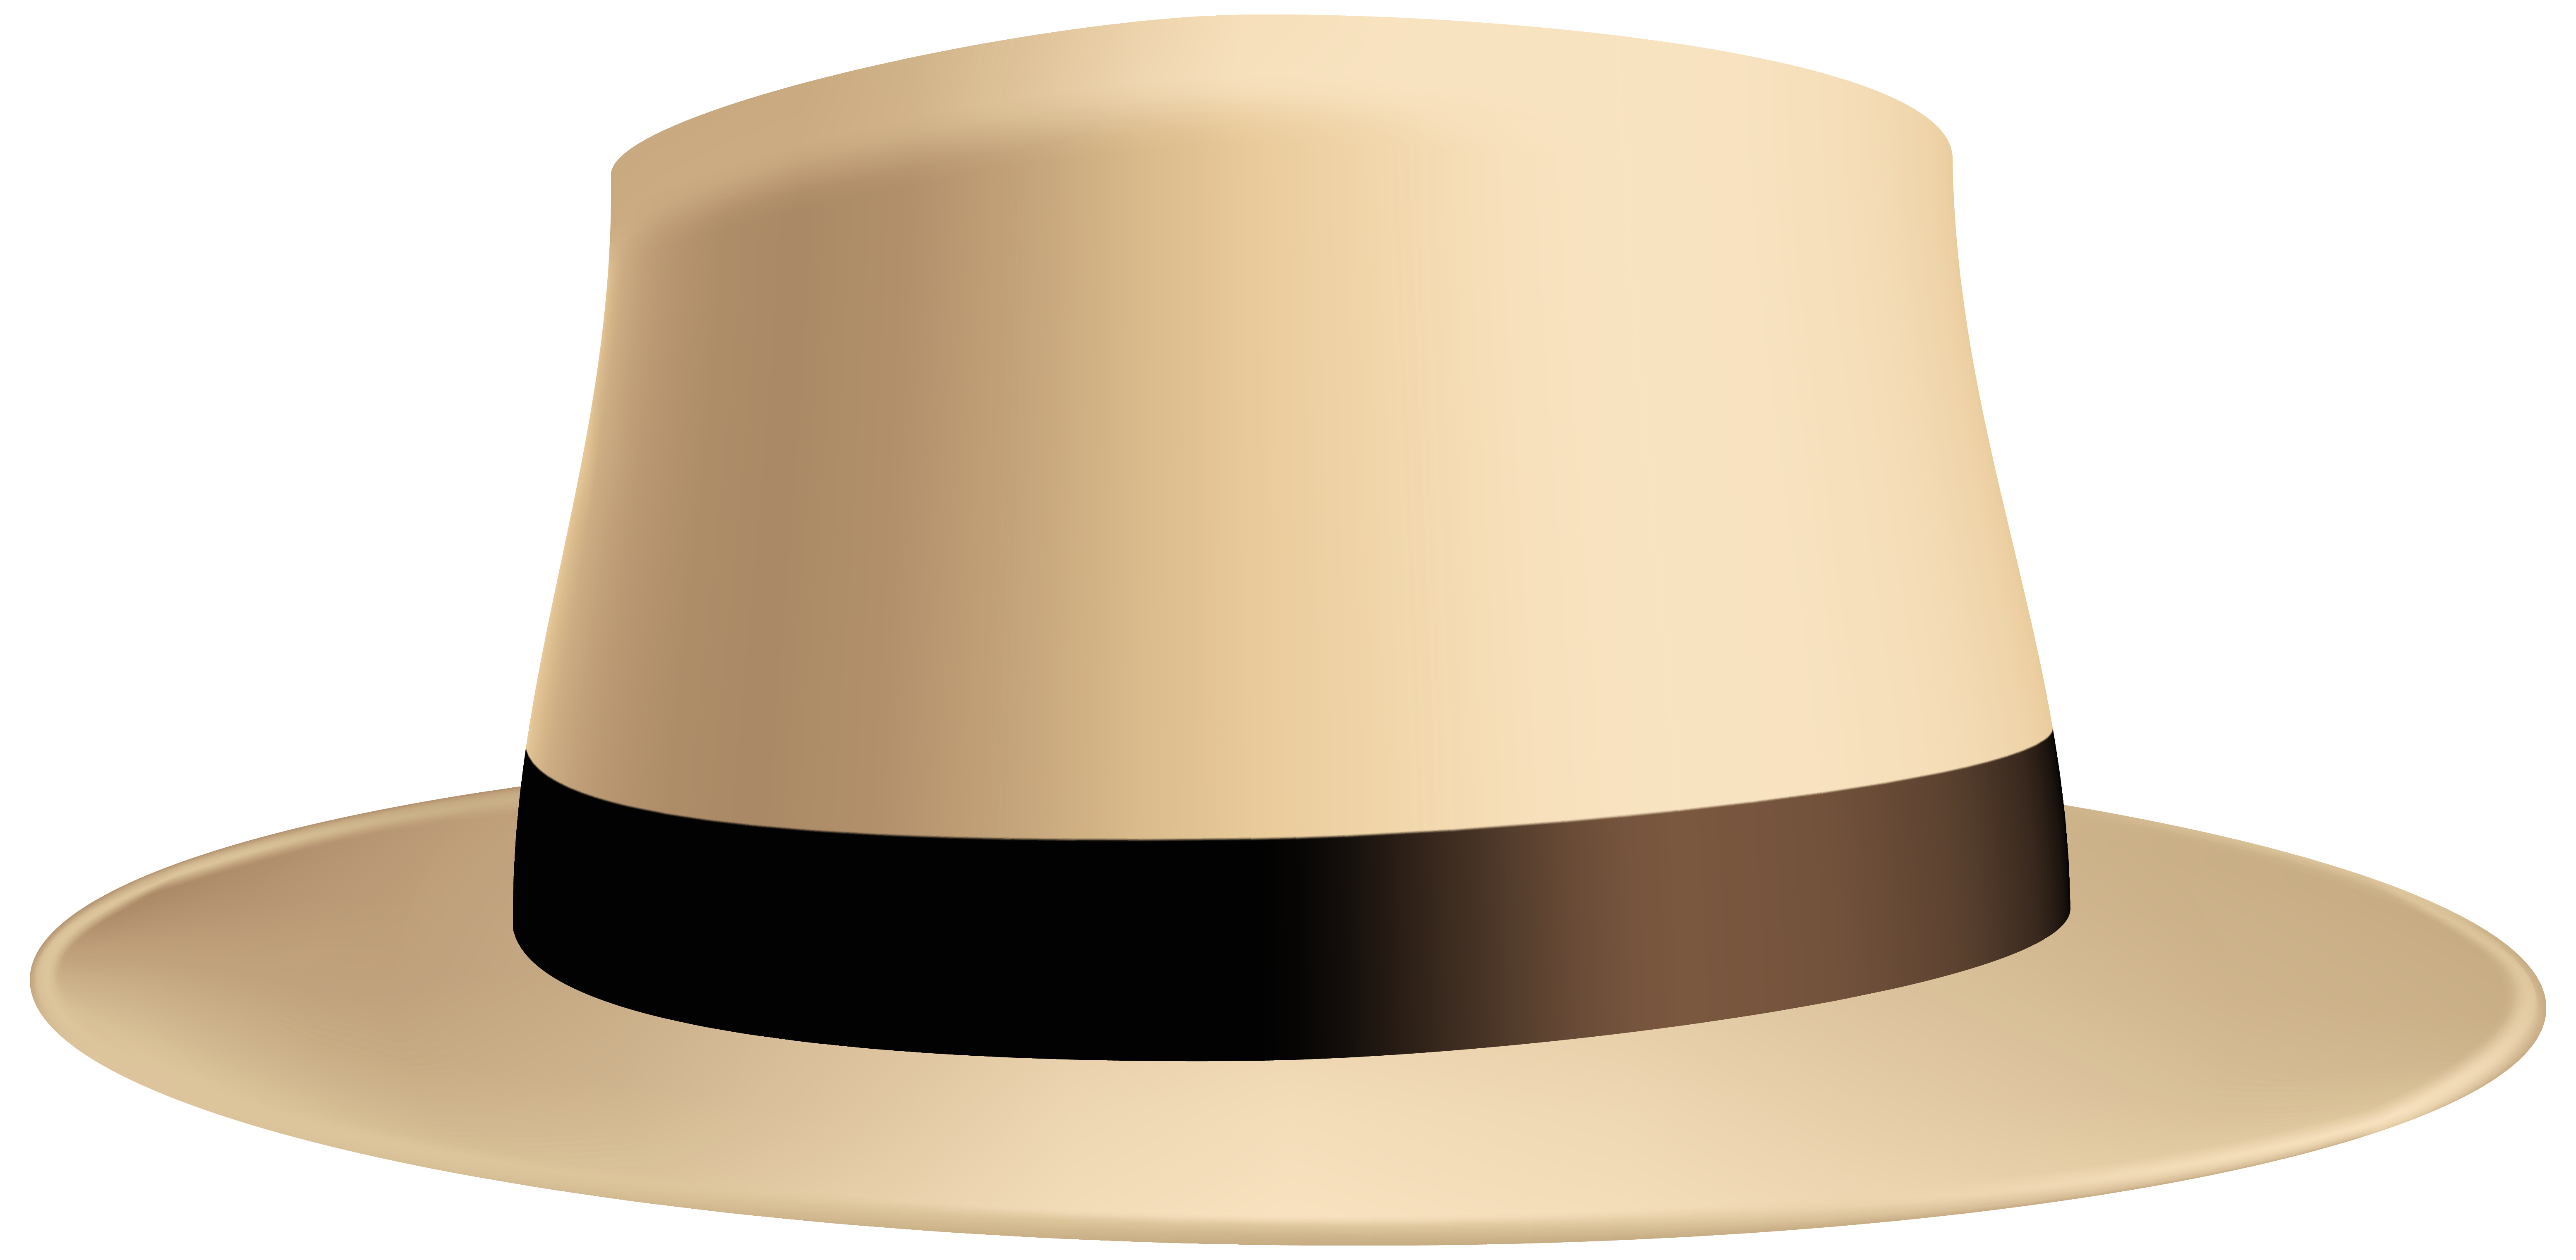 Hats clipart summer. Male hat png clip